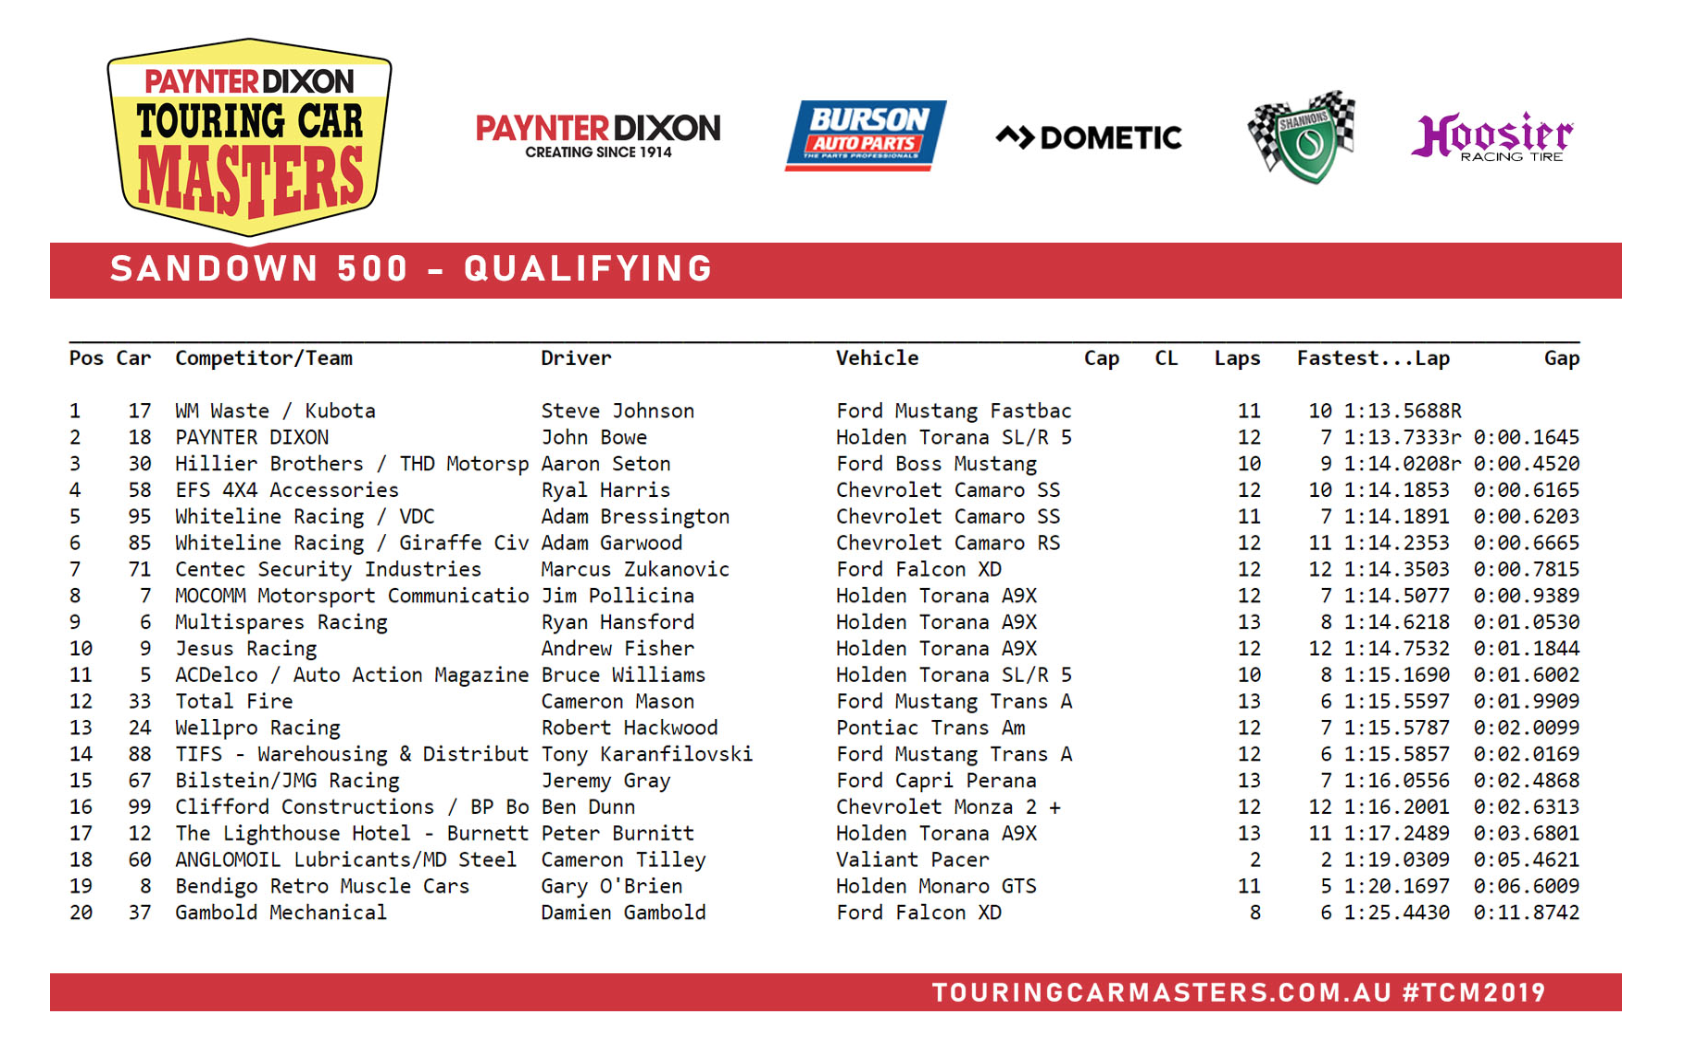 Qualifying Times